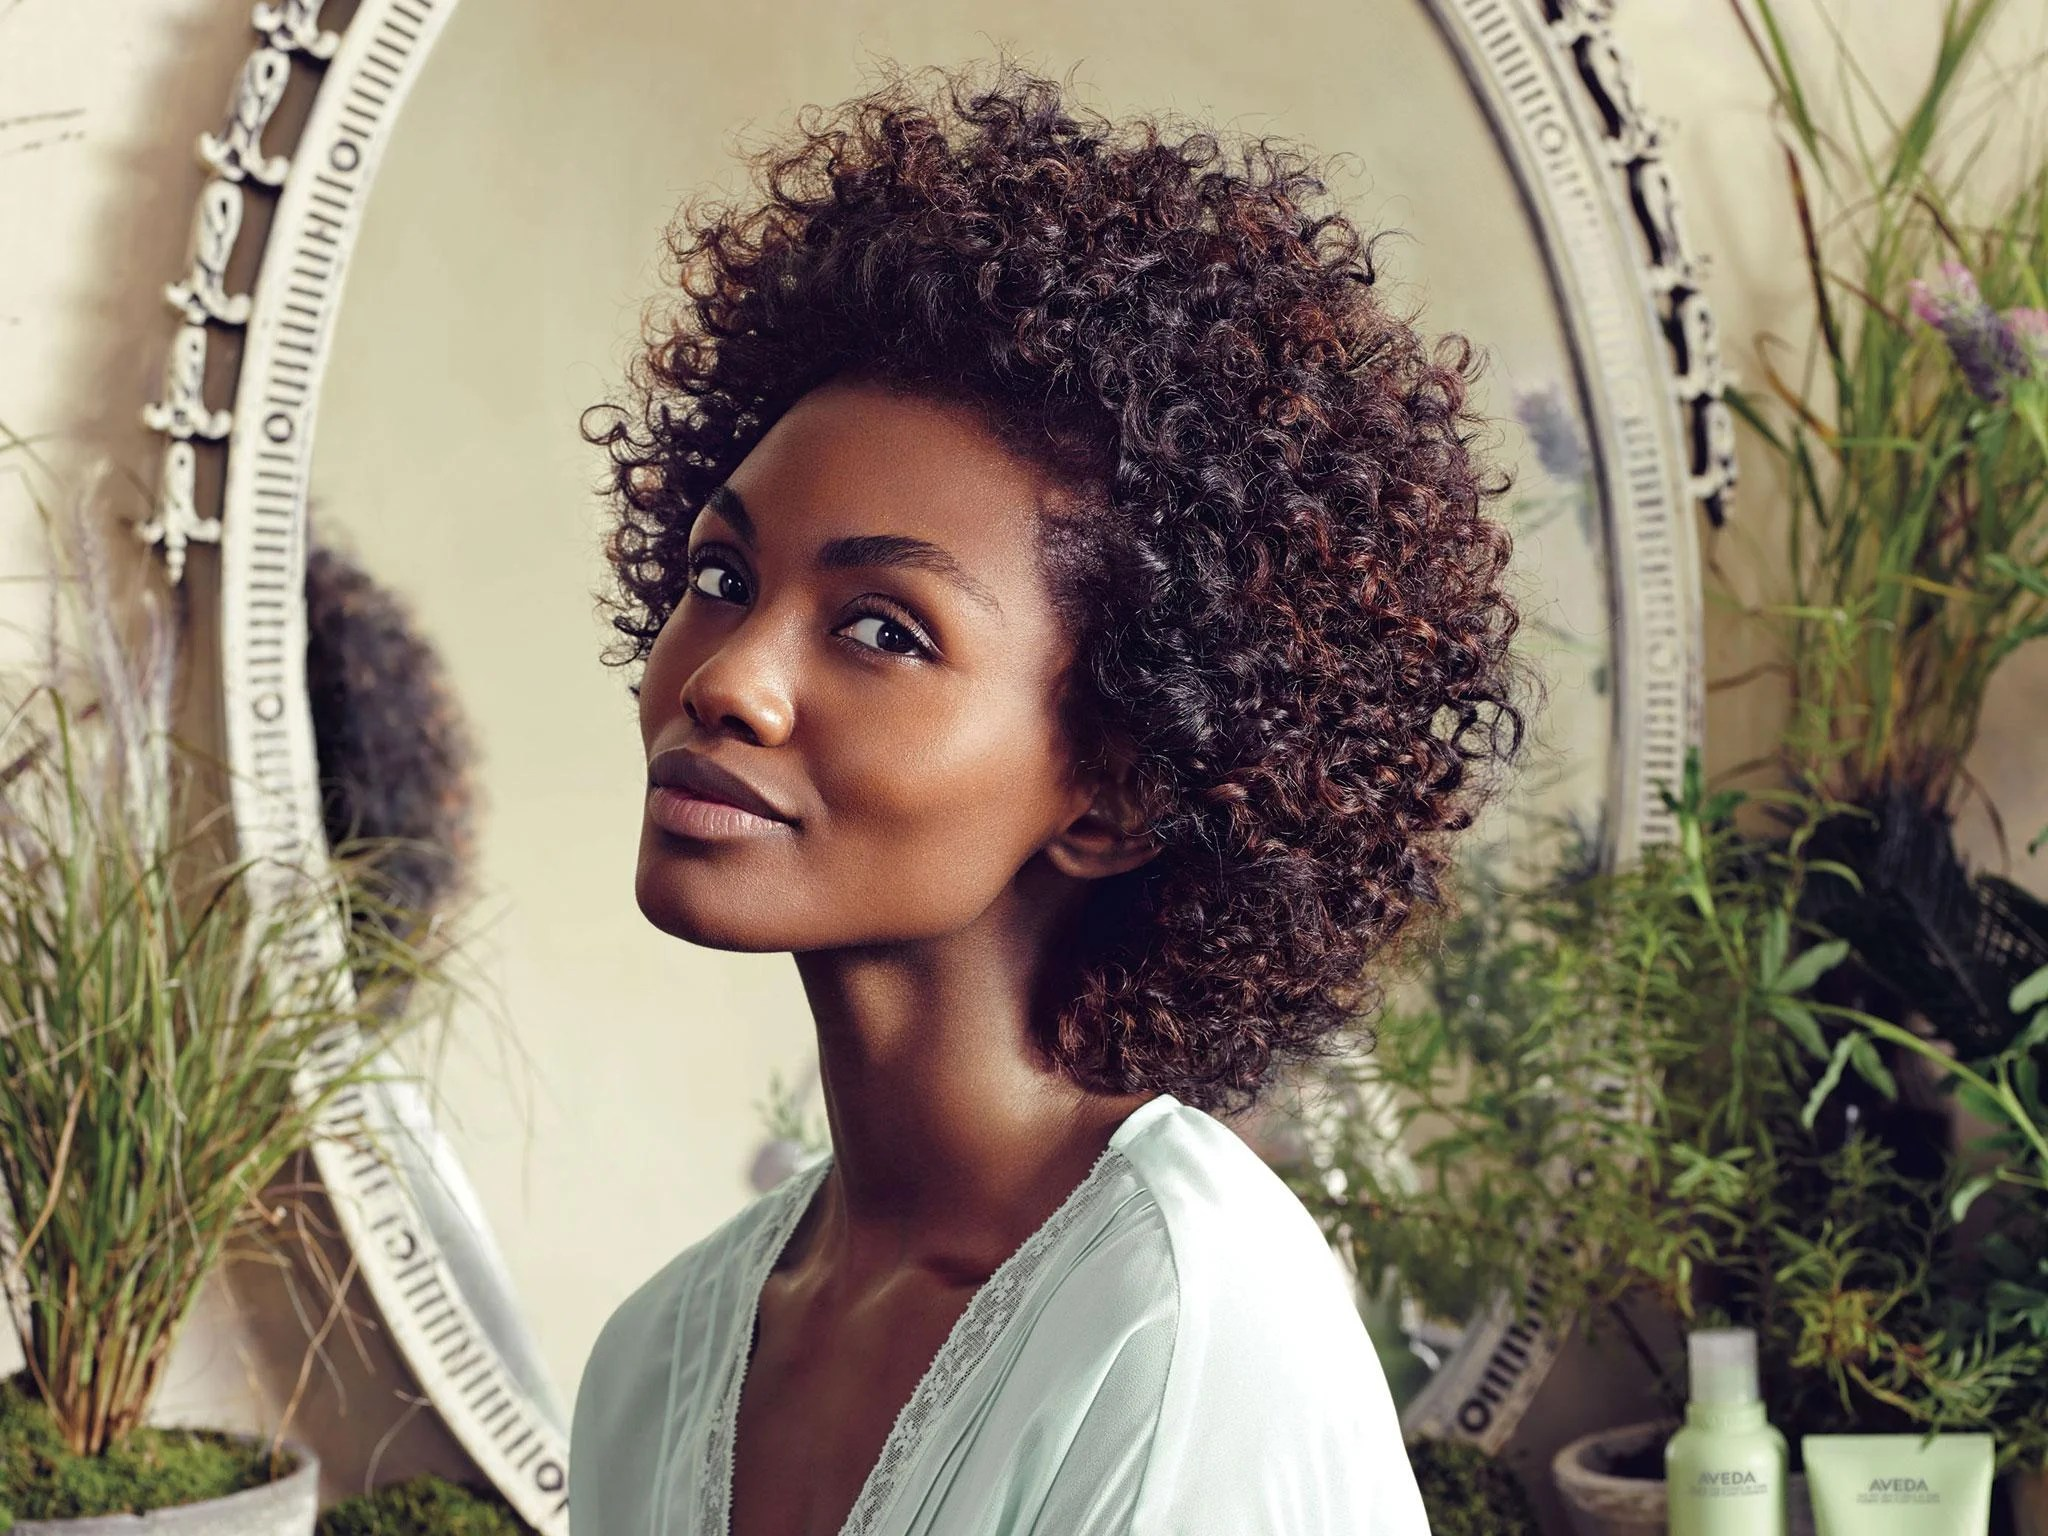 10 Best Products For Ethnic Hair The Independent